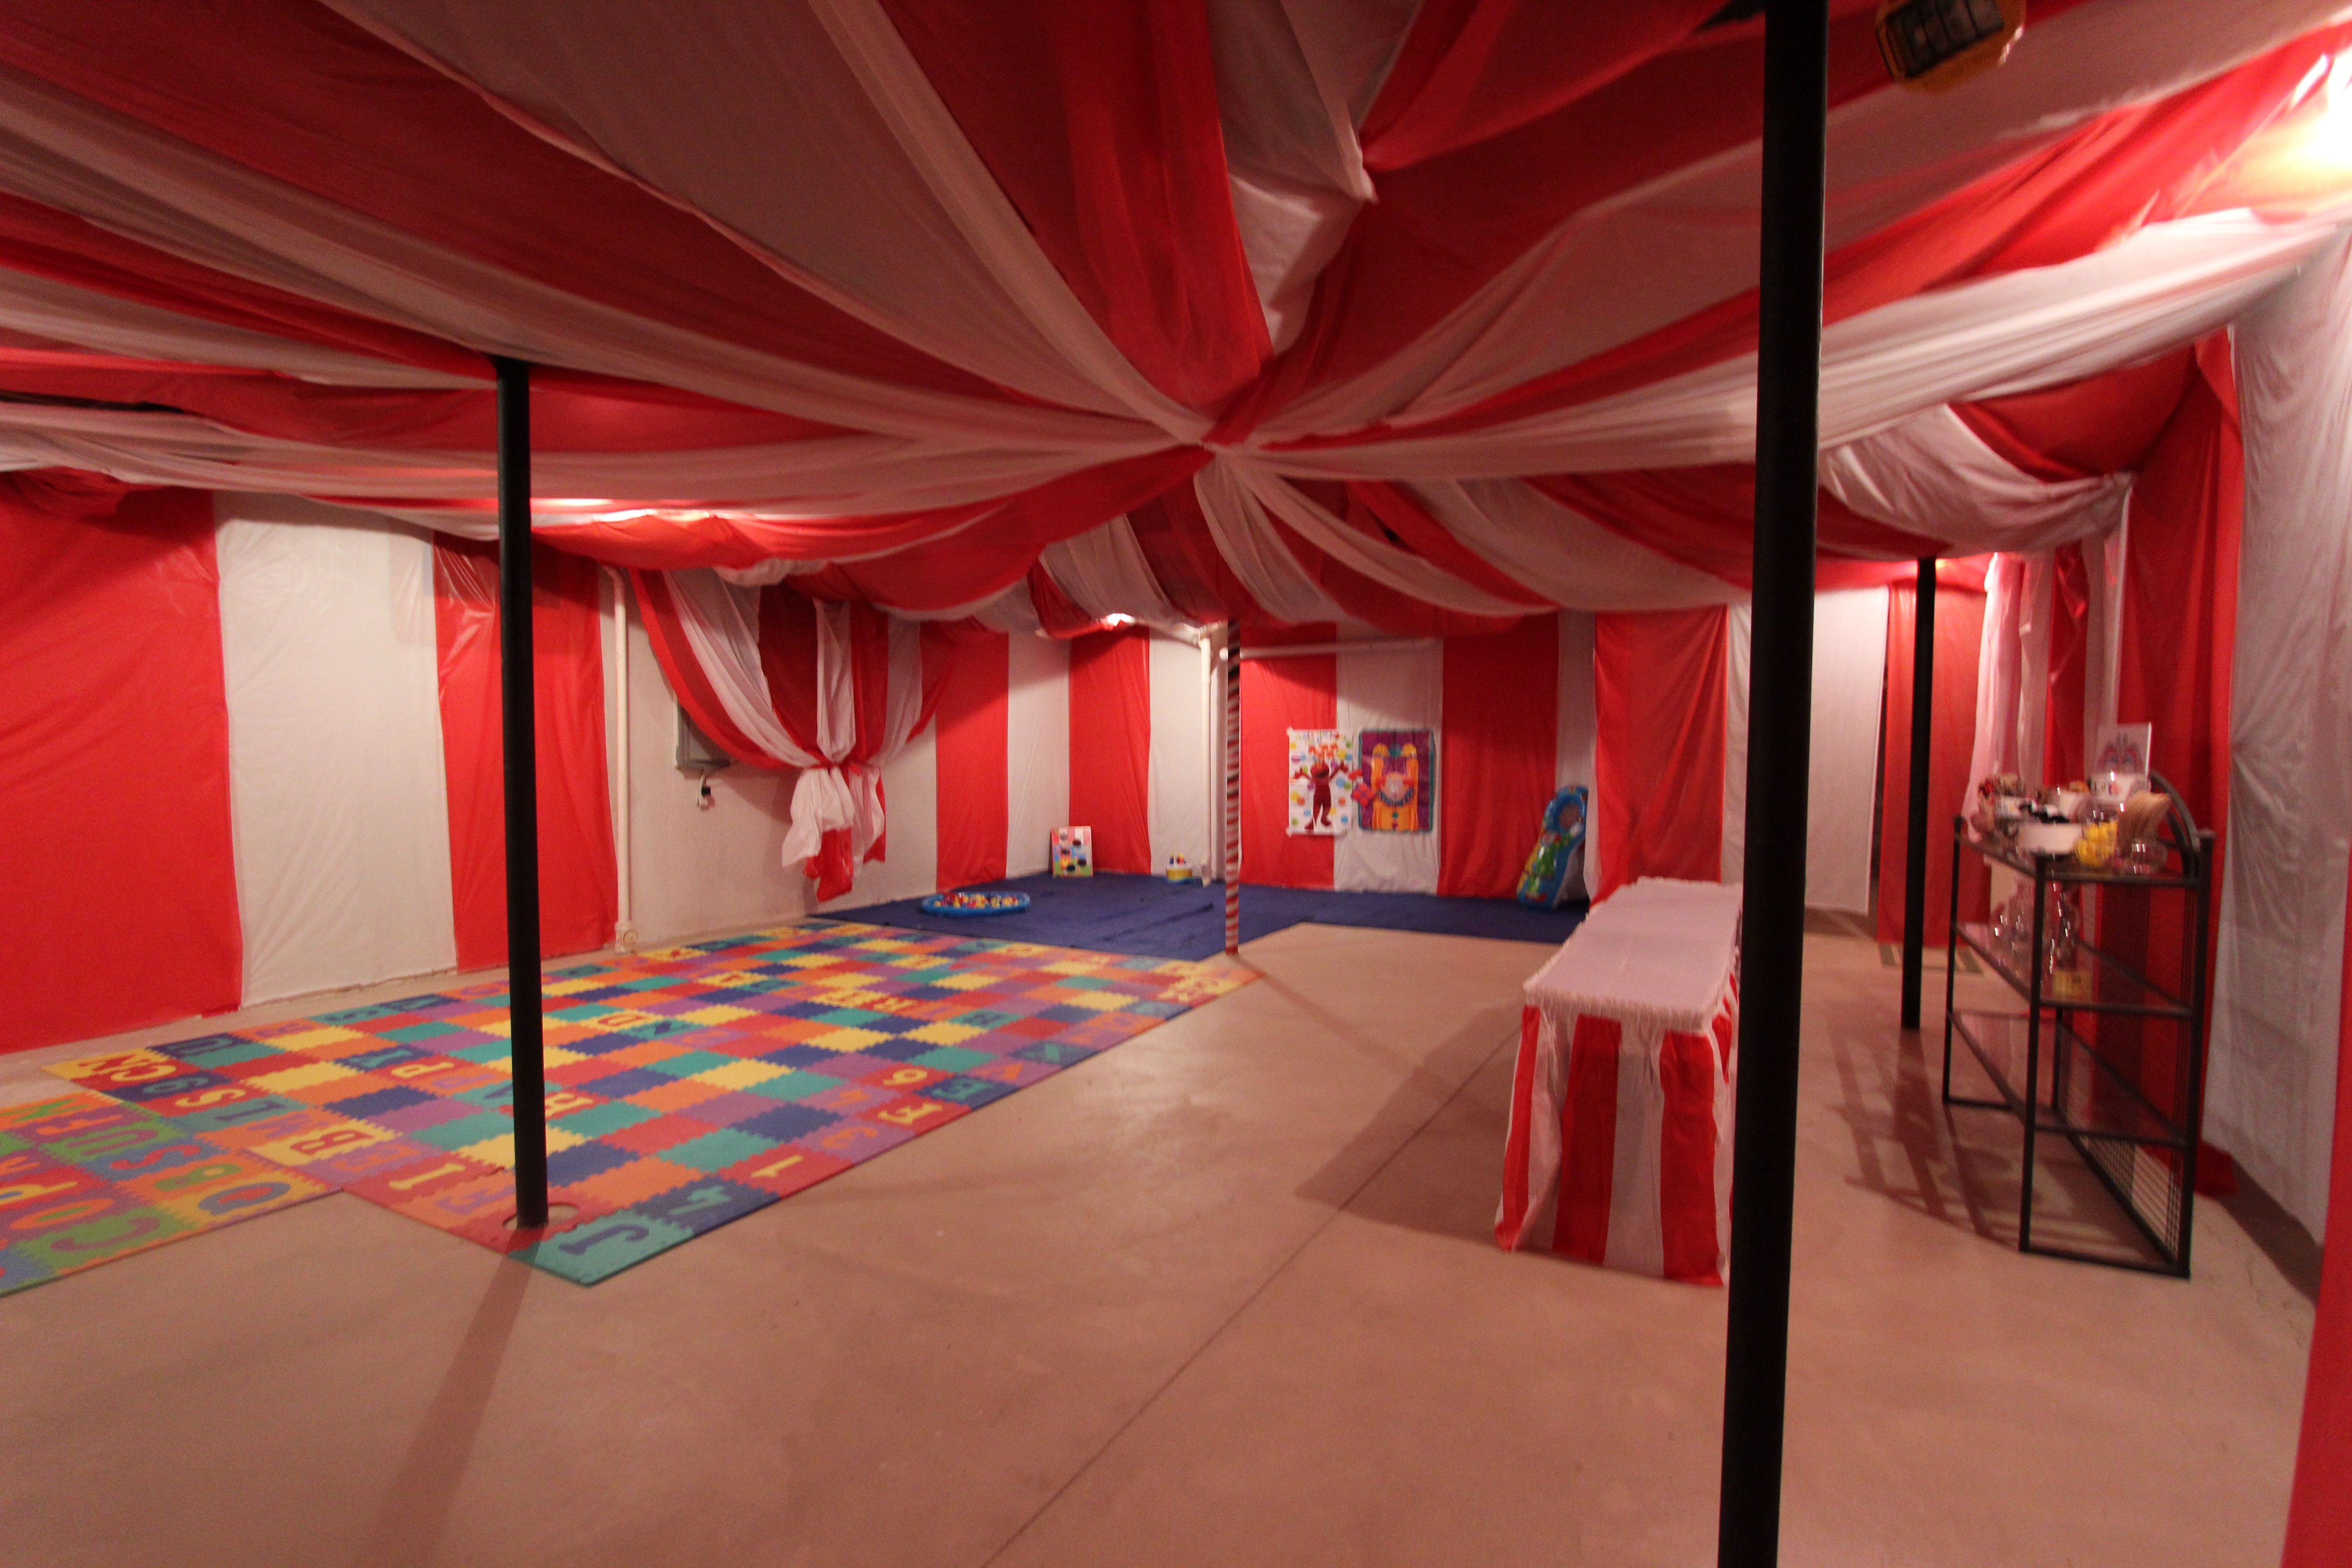 CIRCUS PARTY IN UNFINISHED BASEMENT. VERY CUTE Kids